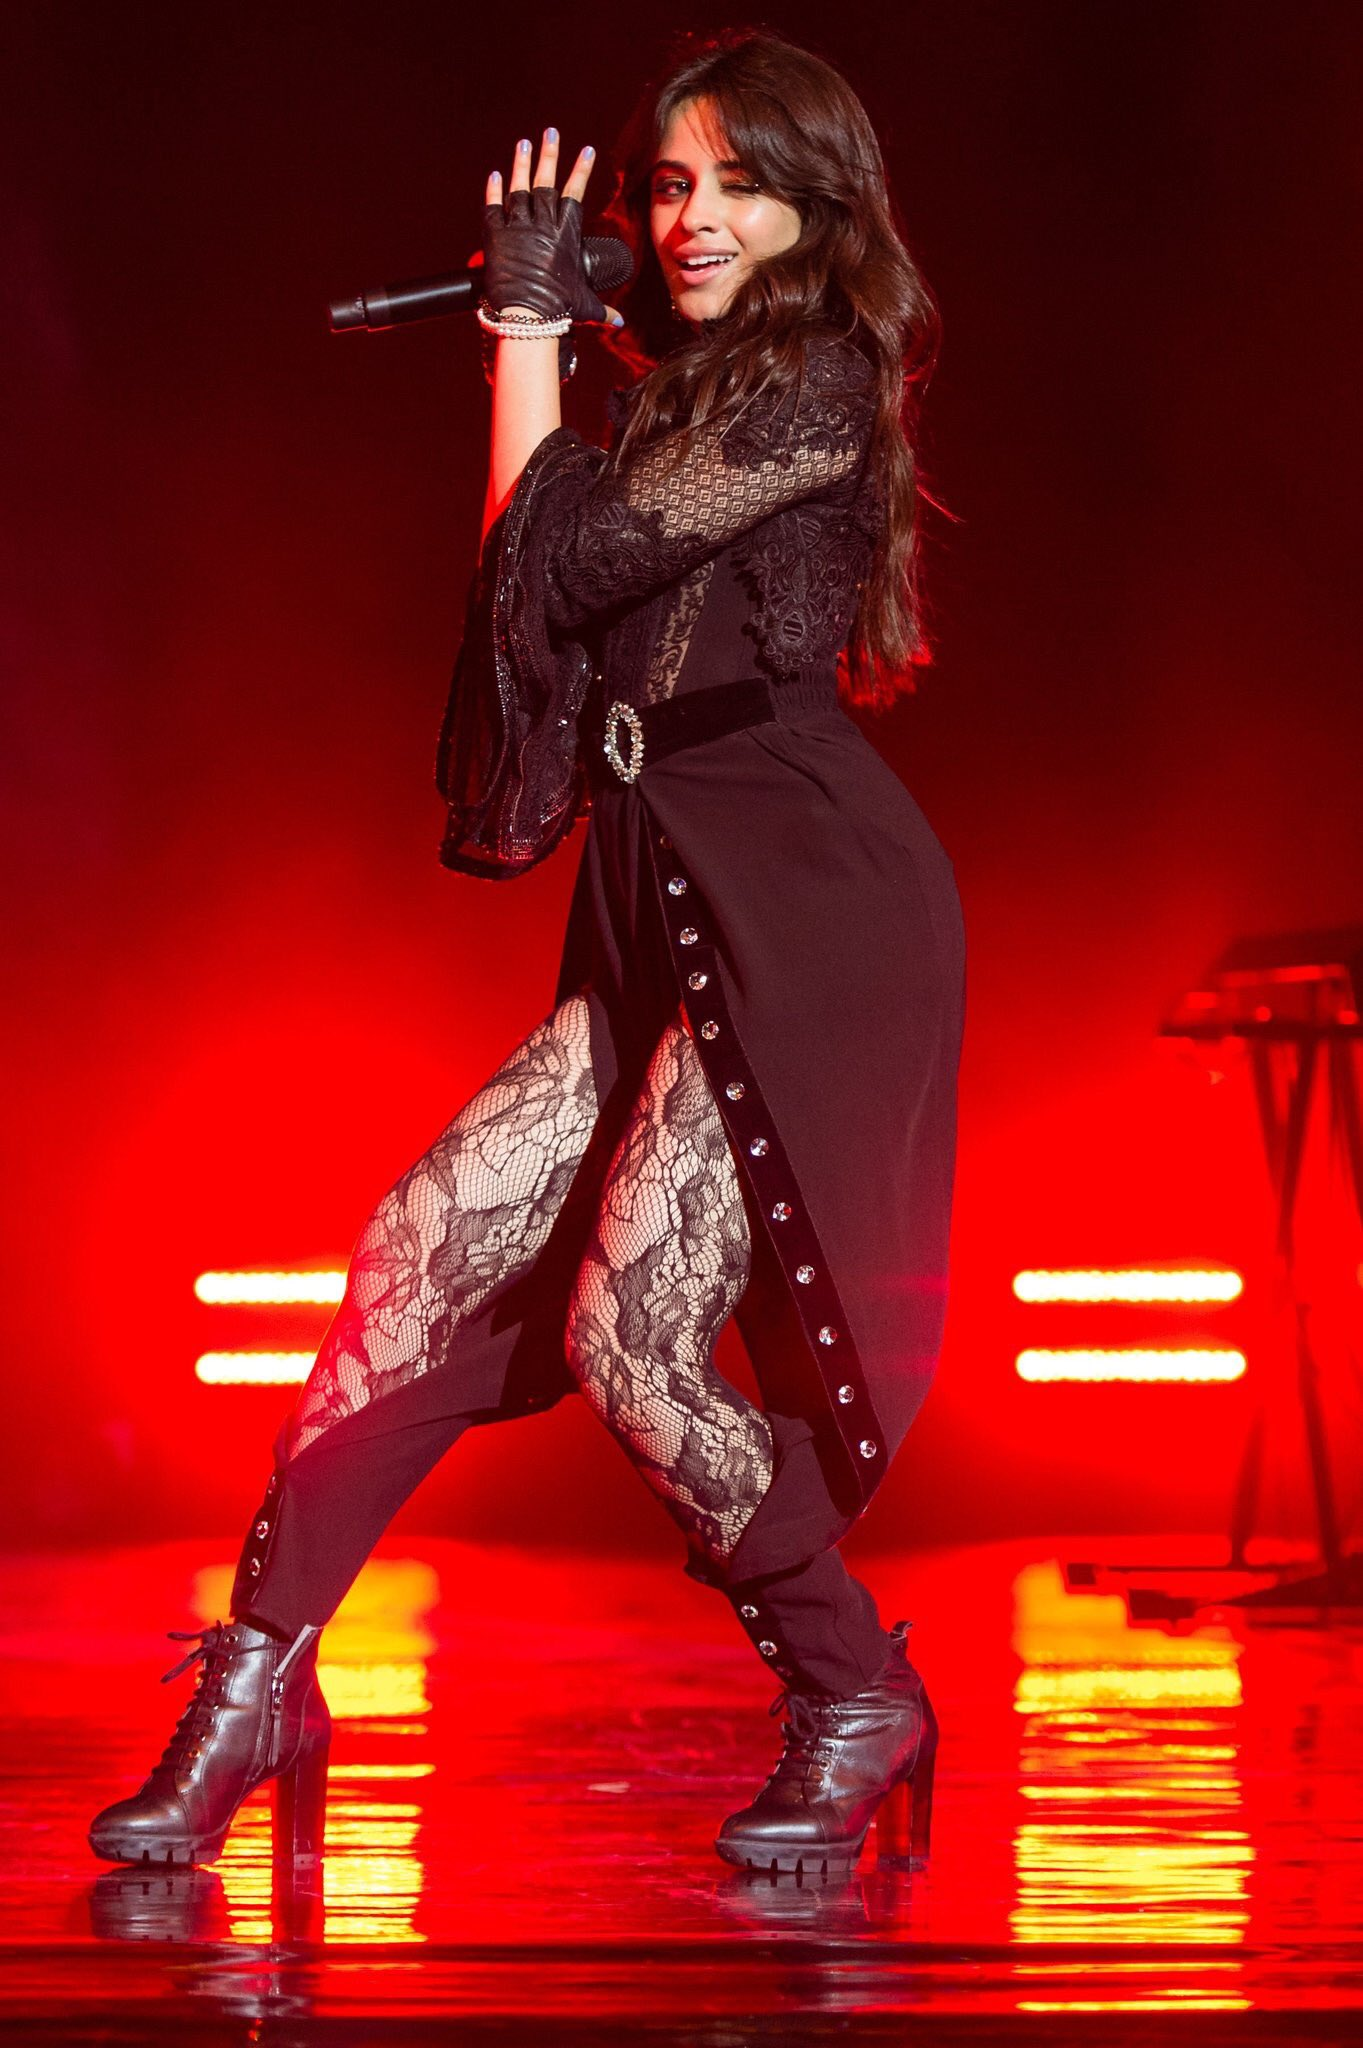 My #TeenChoice for #ChoiceFemaleArtist is @Camila_Cabello https://t.co/O6yMFhTguY